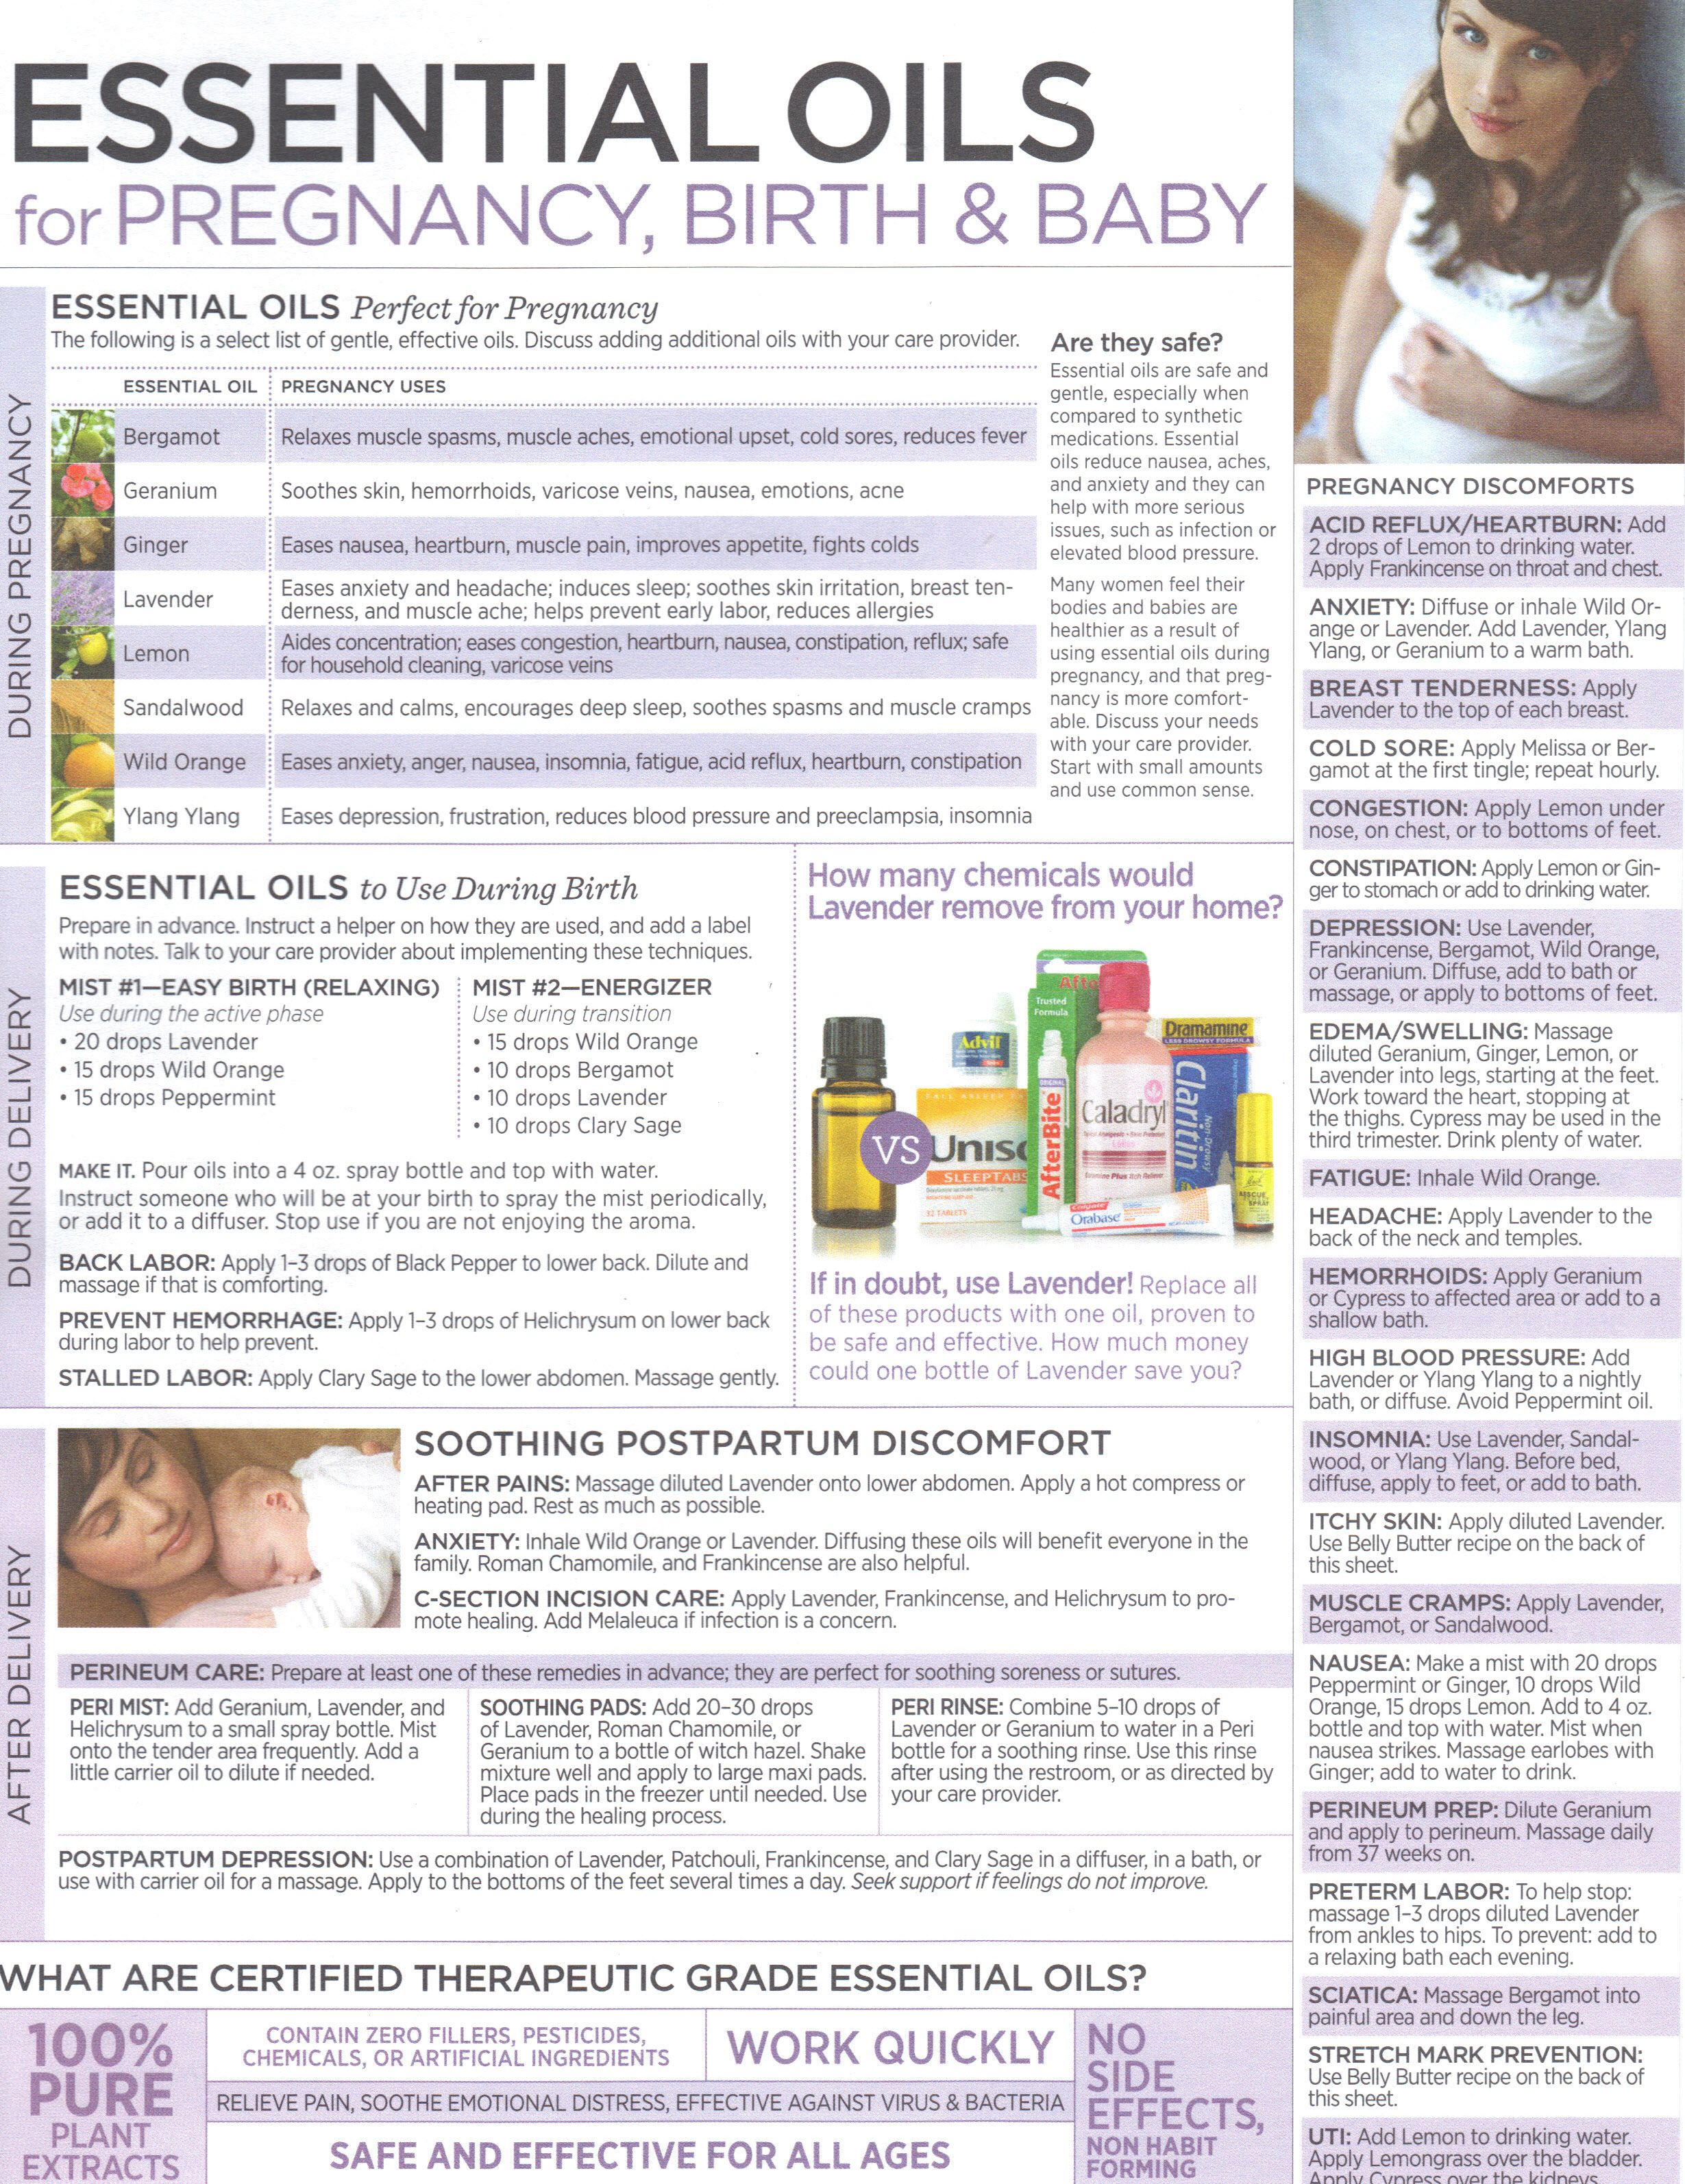 List of safe and gentle oils to use during and after pregnancy to help mom with symptoms during pregnancy, labor and postpartum. http://www.mydoterra.com/amandabradshaw/